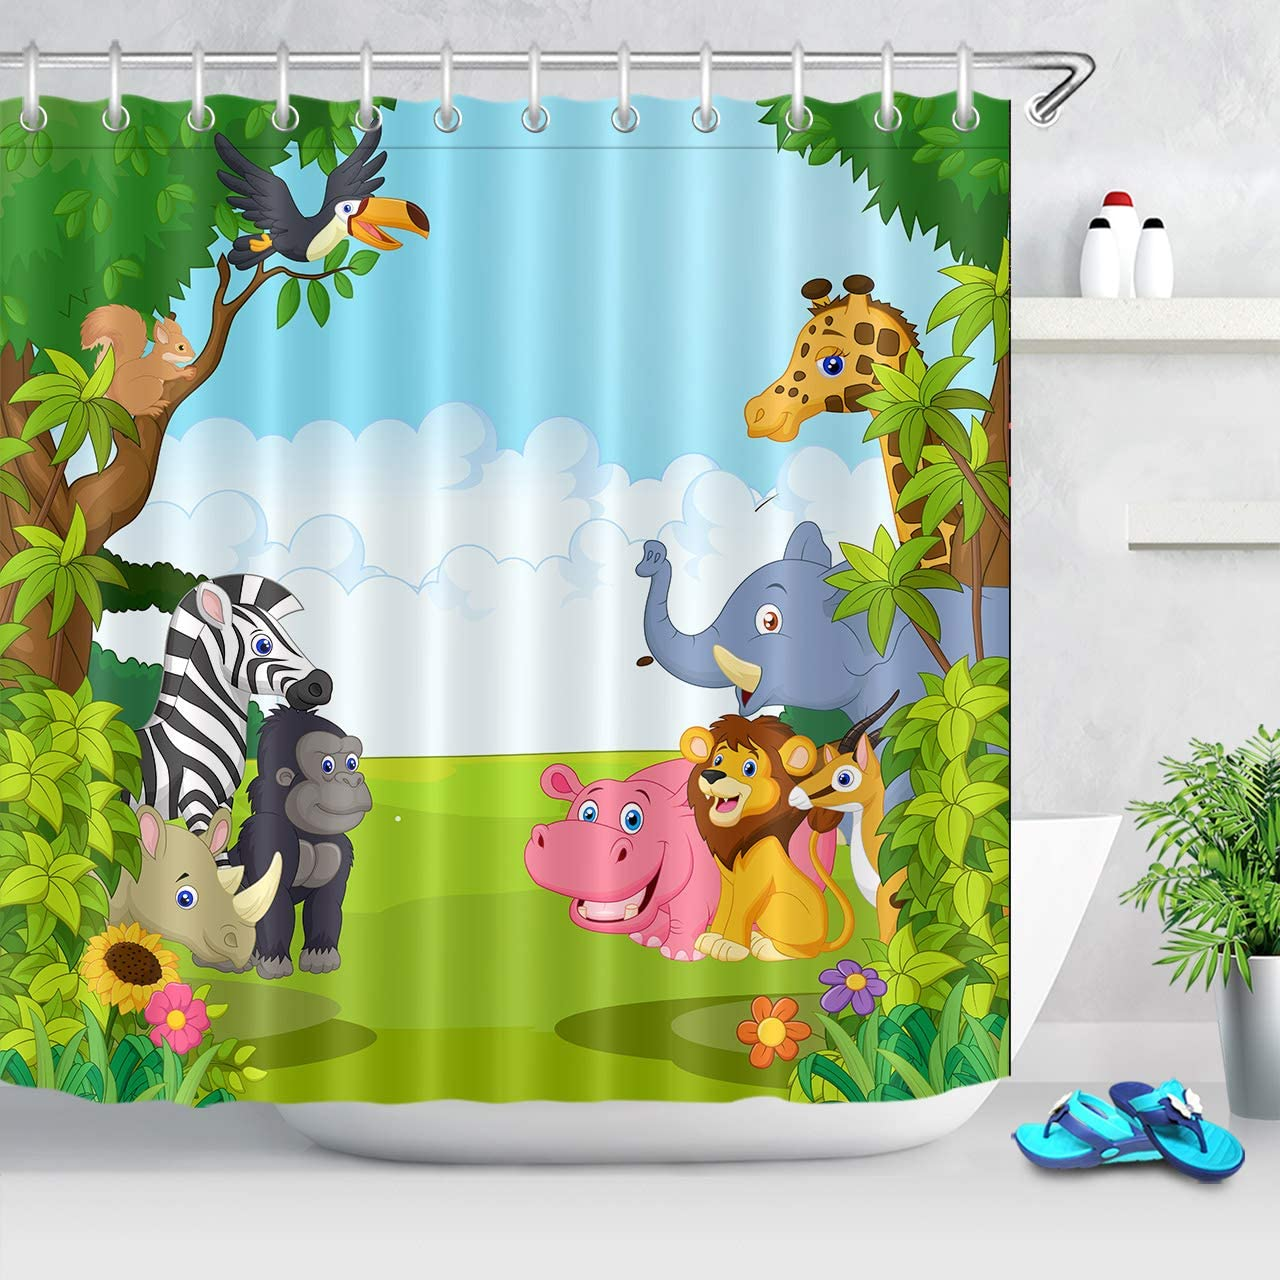 New Animal Hippo Bathroom Shower Curtain Art Cartoon Kids Bathtub Decor Liner